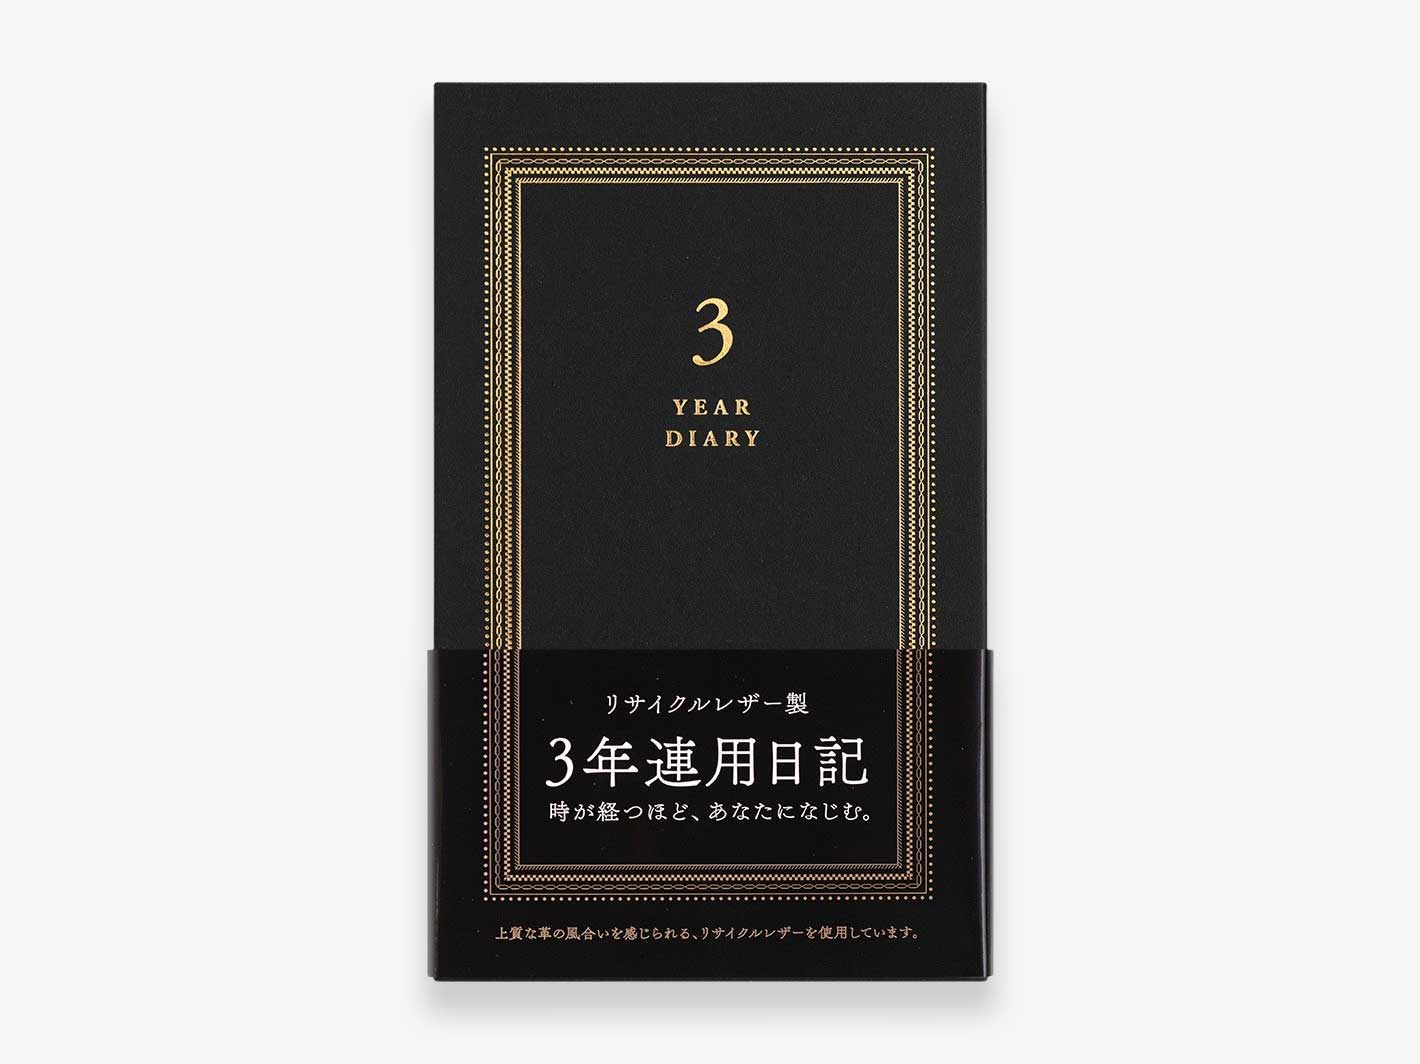 3 Year Diary Black - Recycled Leather